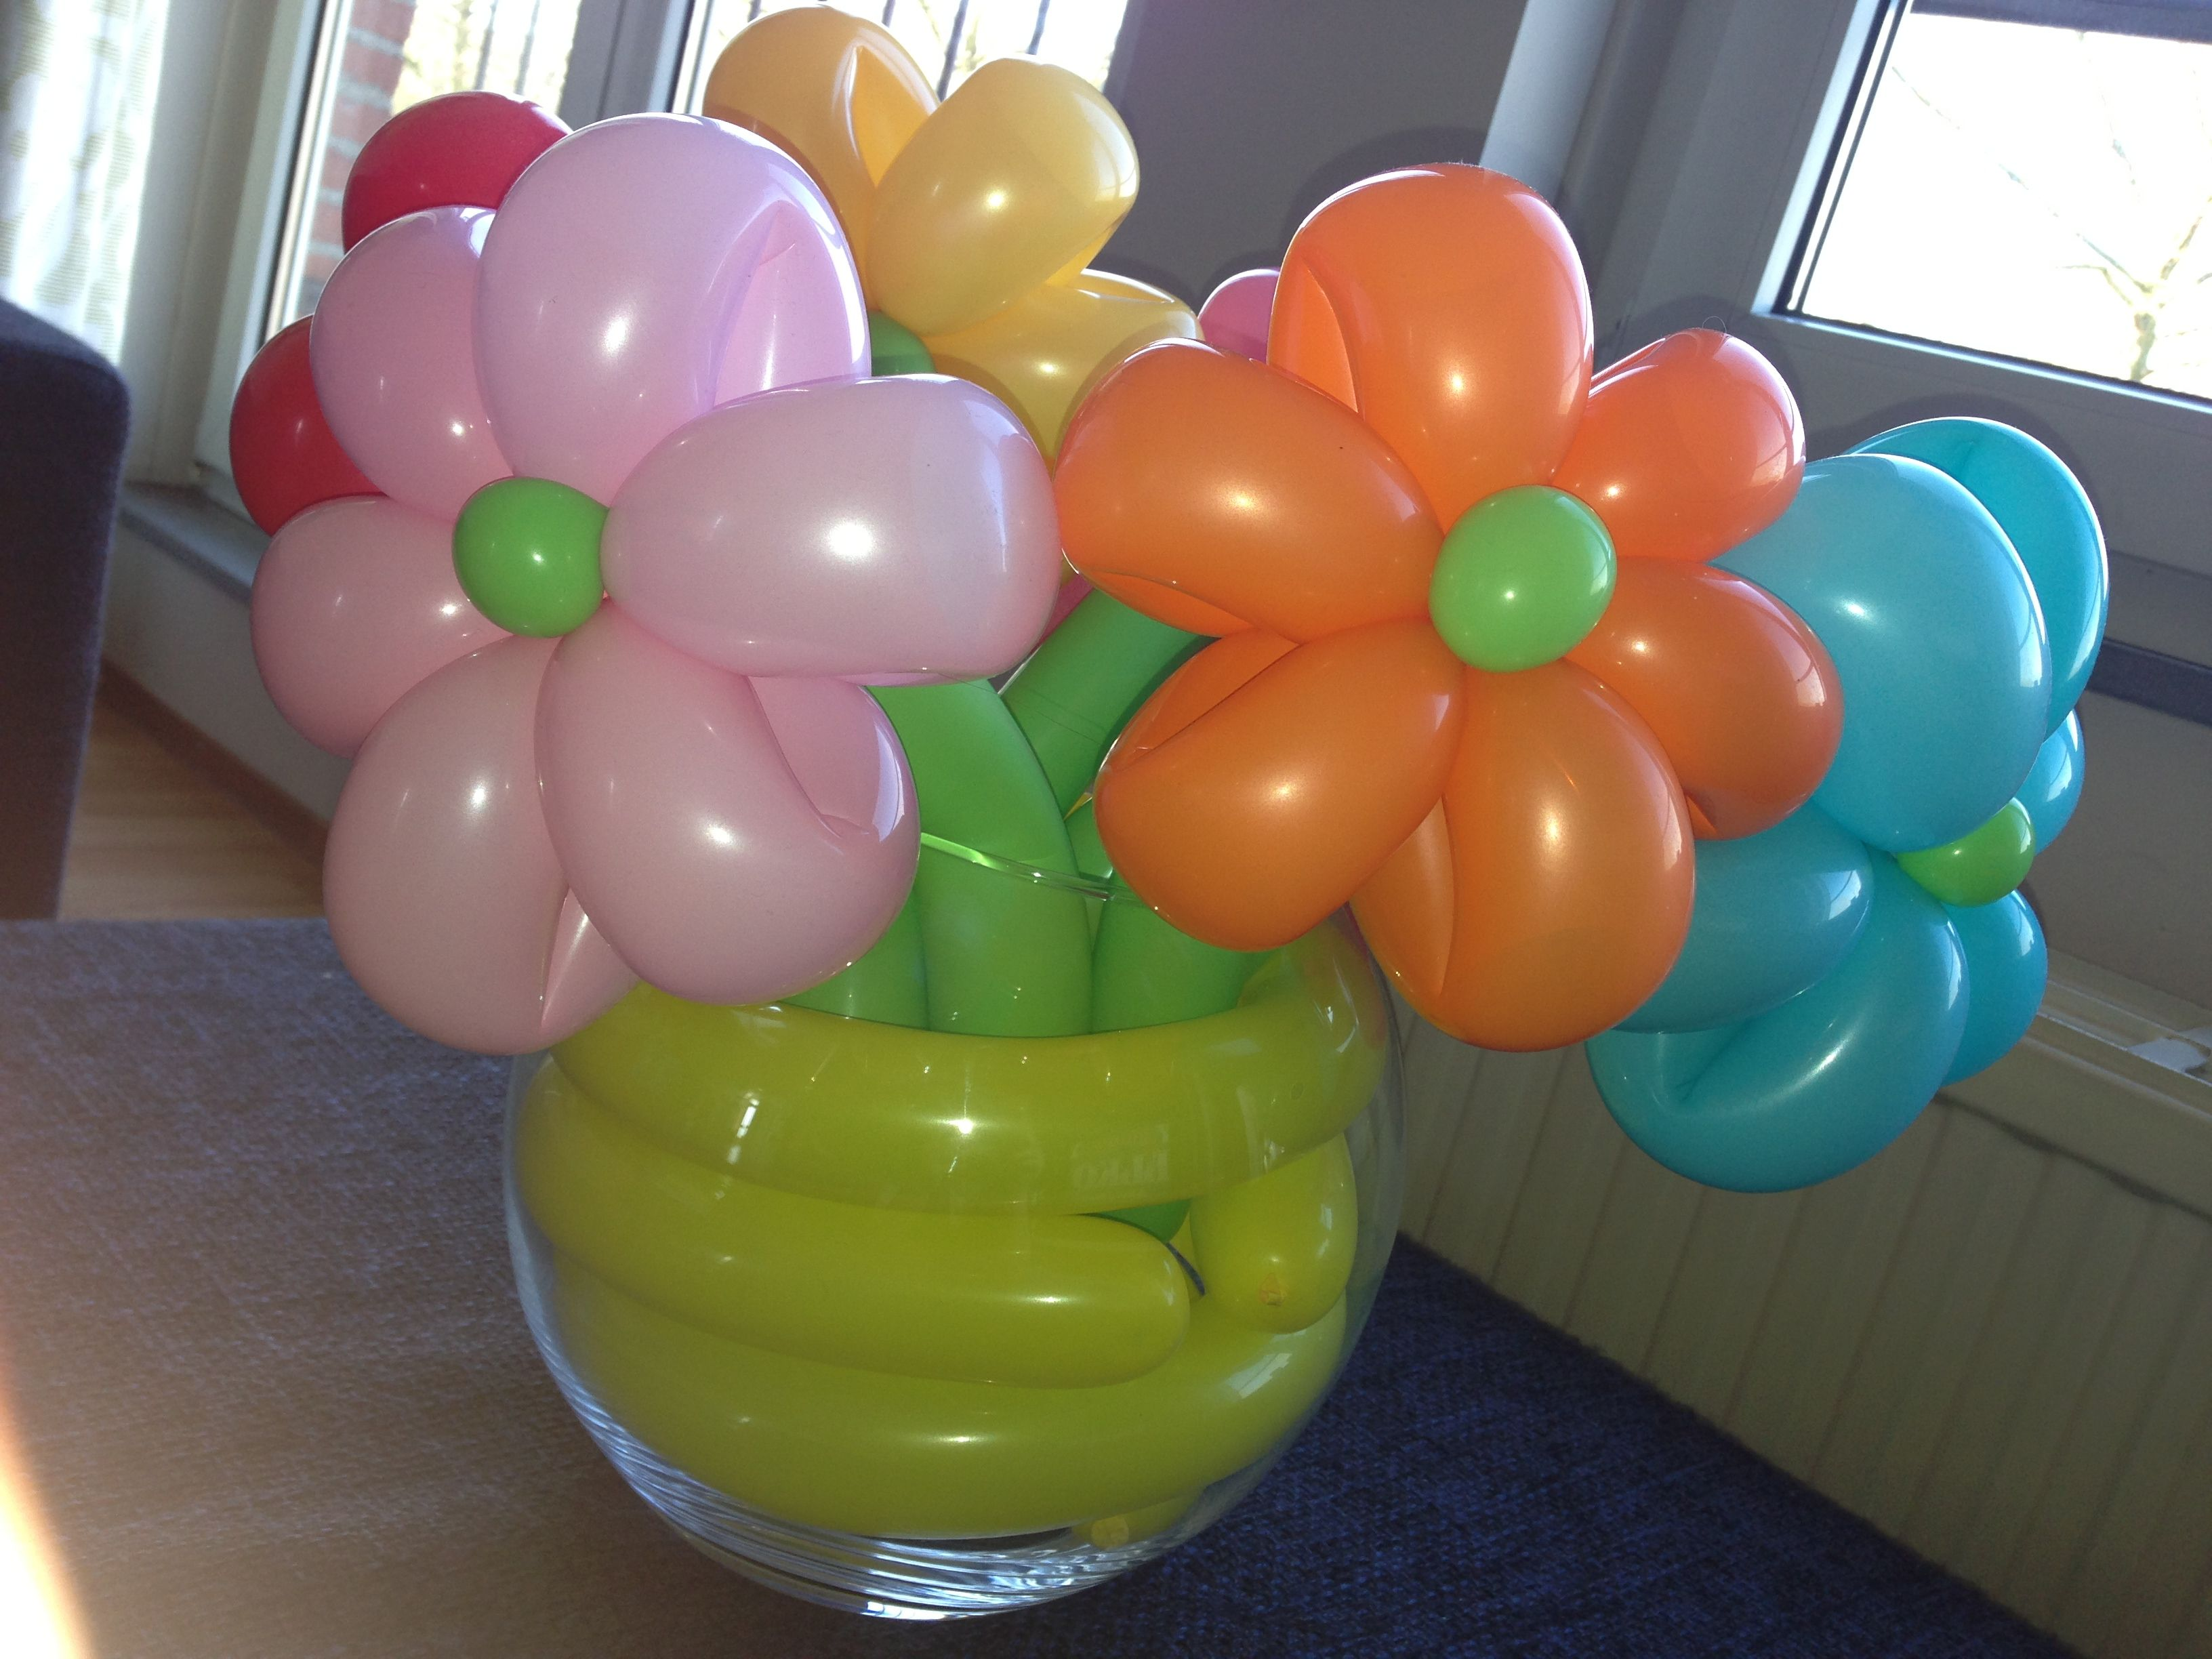 Balloon flower bouquet in vase made by clown tallie my for Balloons arrangement decoration